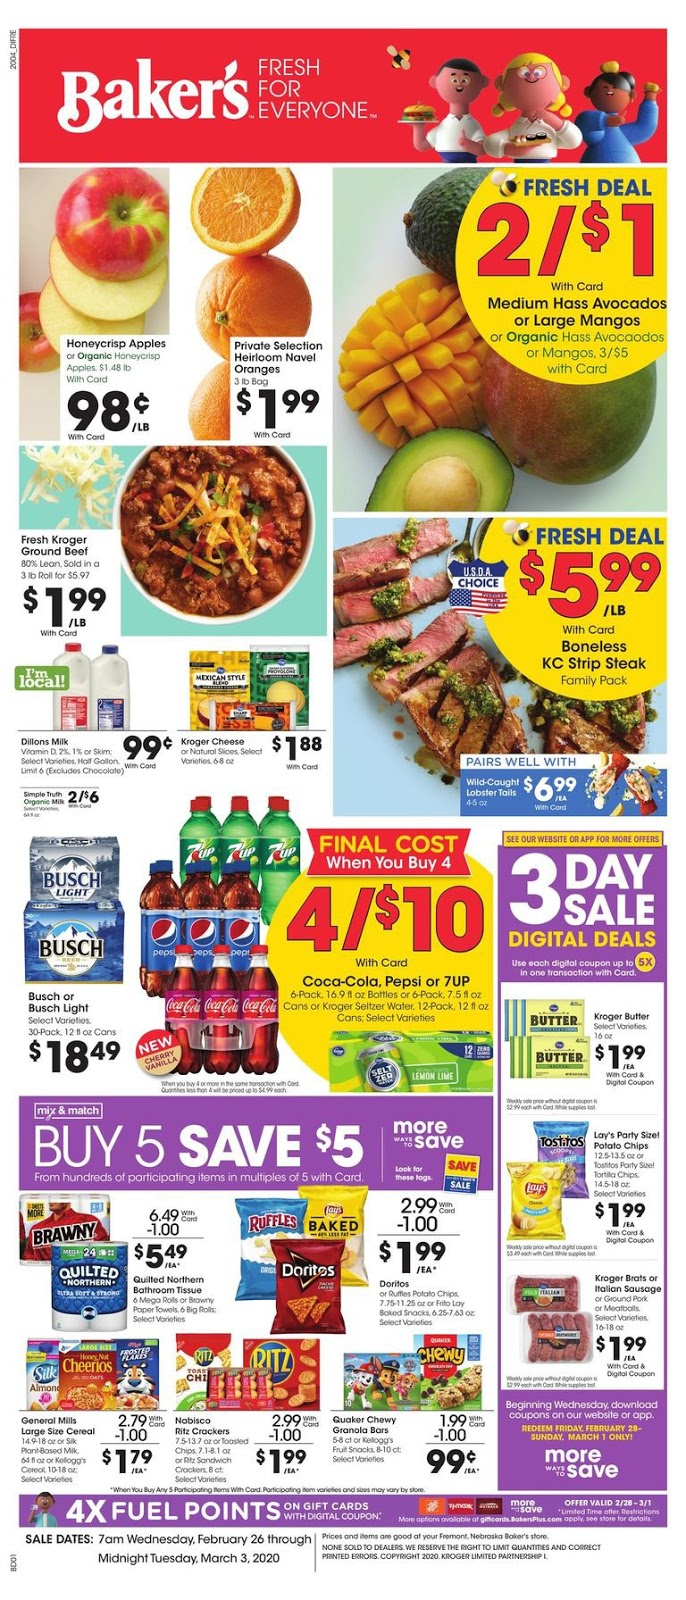 ⭐ Bakers Ad 2/26/20 ⭐ Bakers Weekly Ad February 26 2020